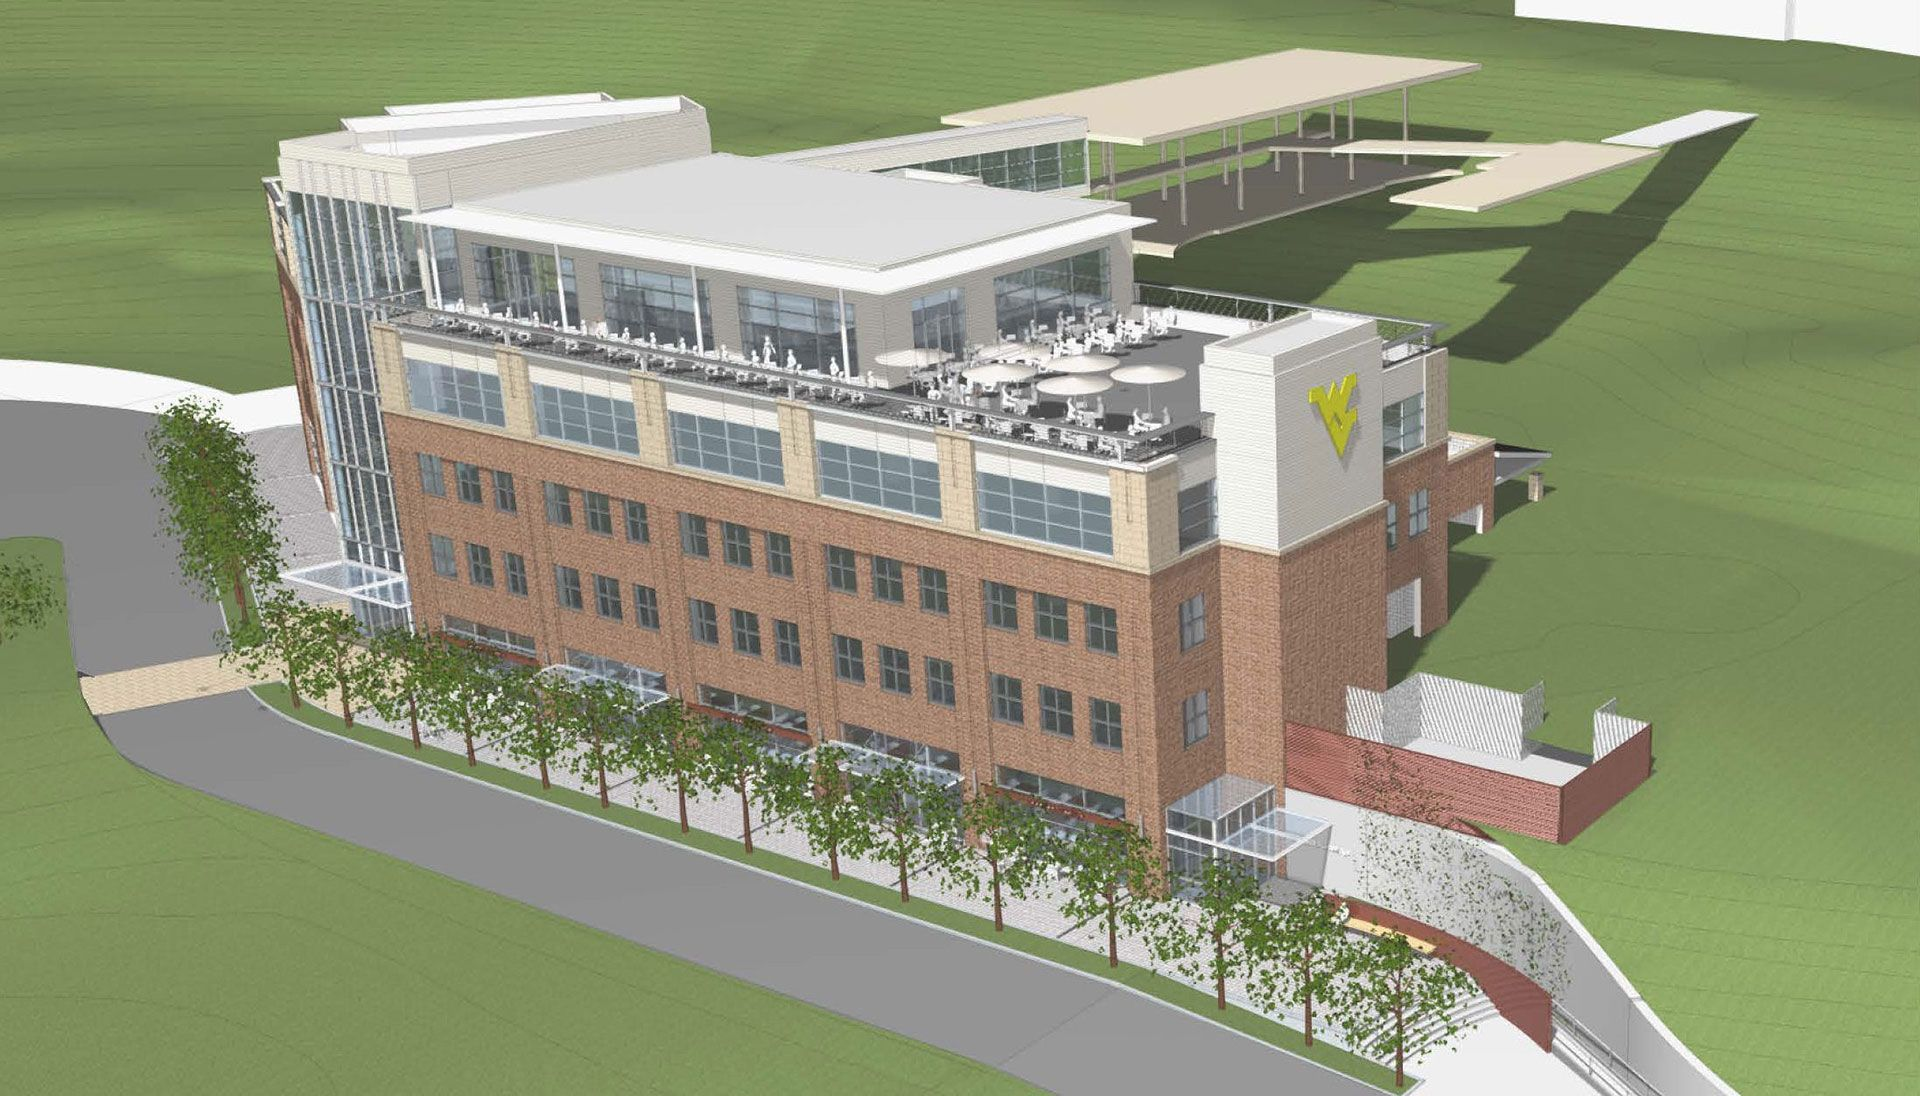 Rendering of Evansdale Crossing